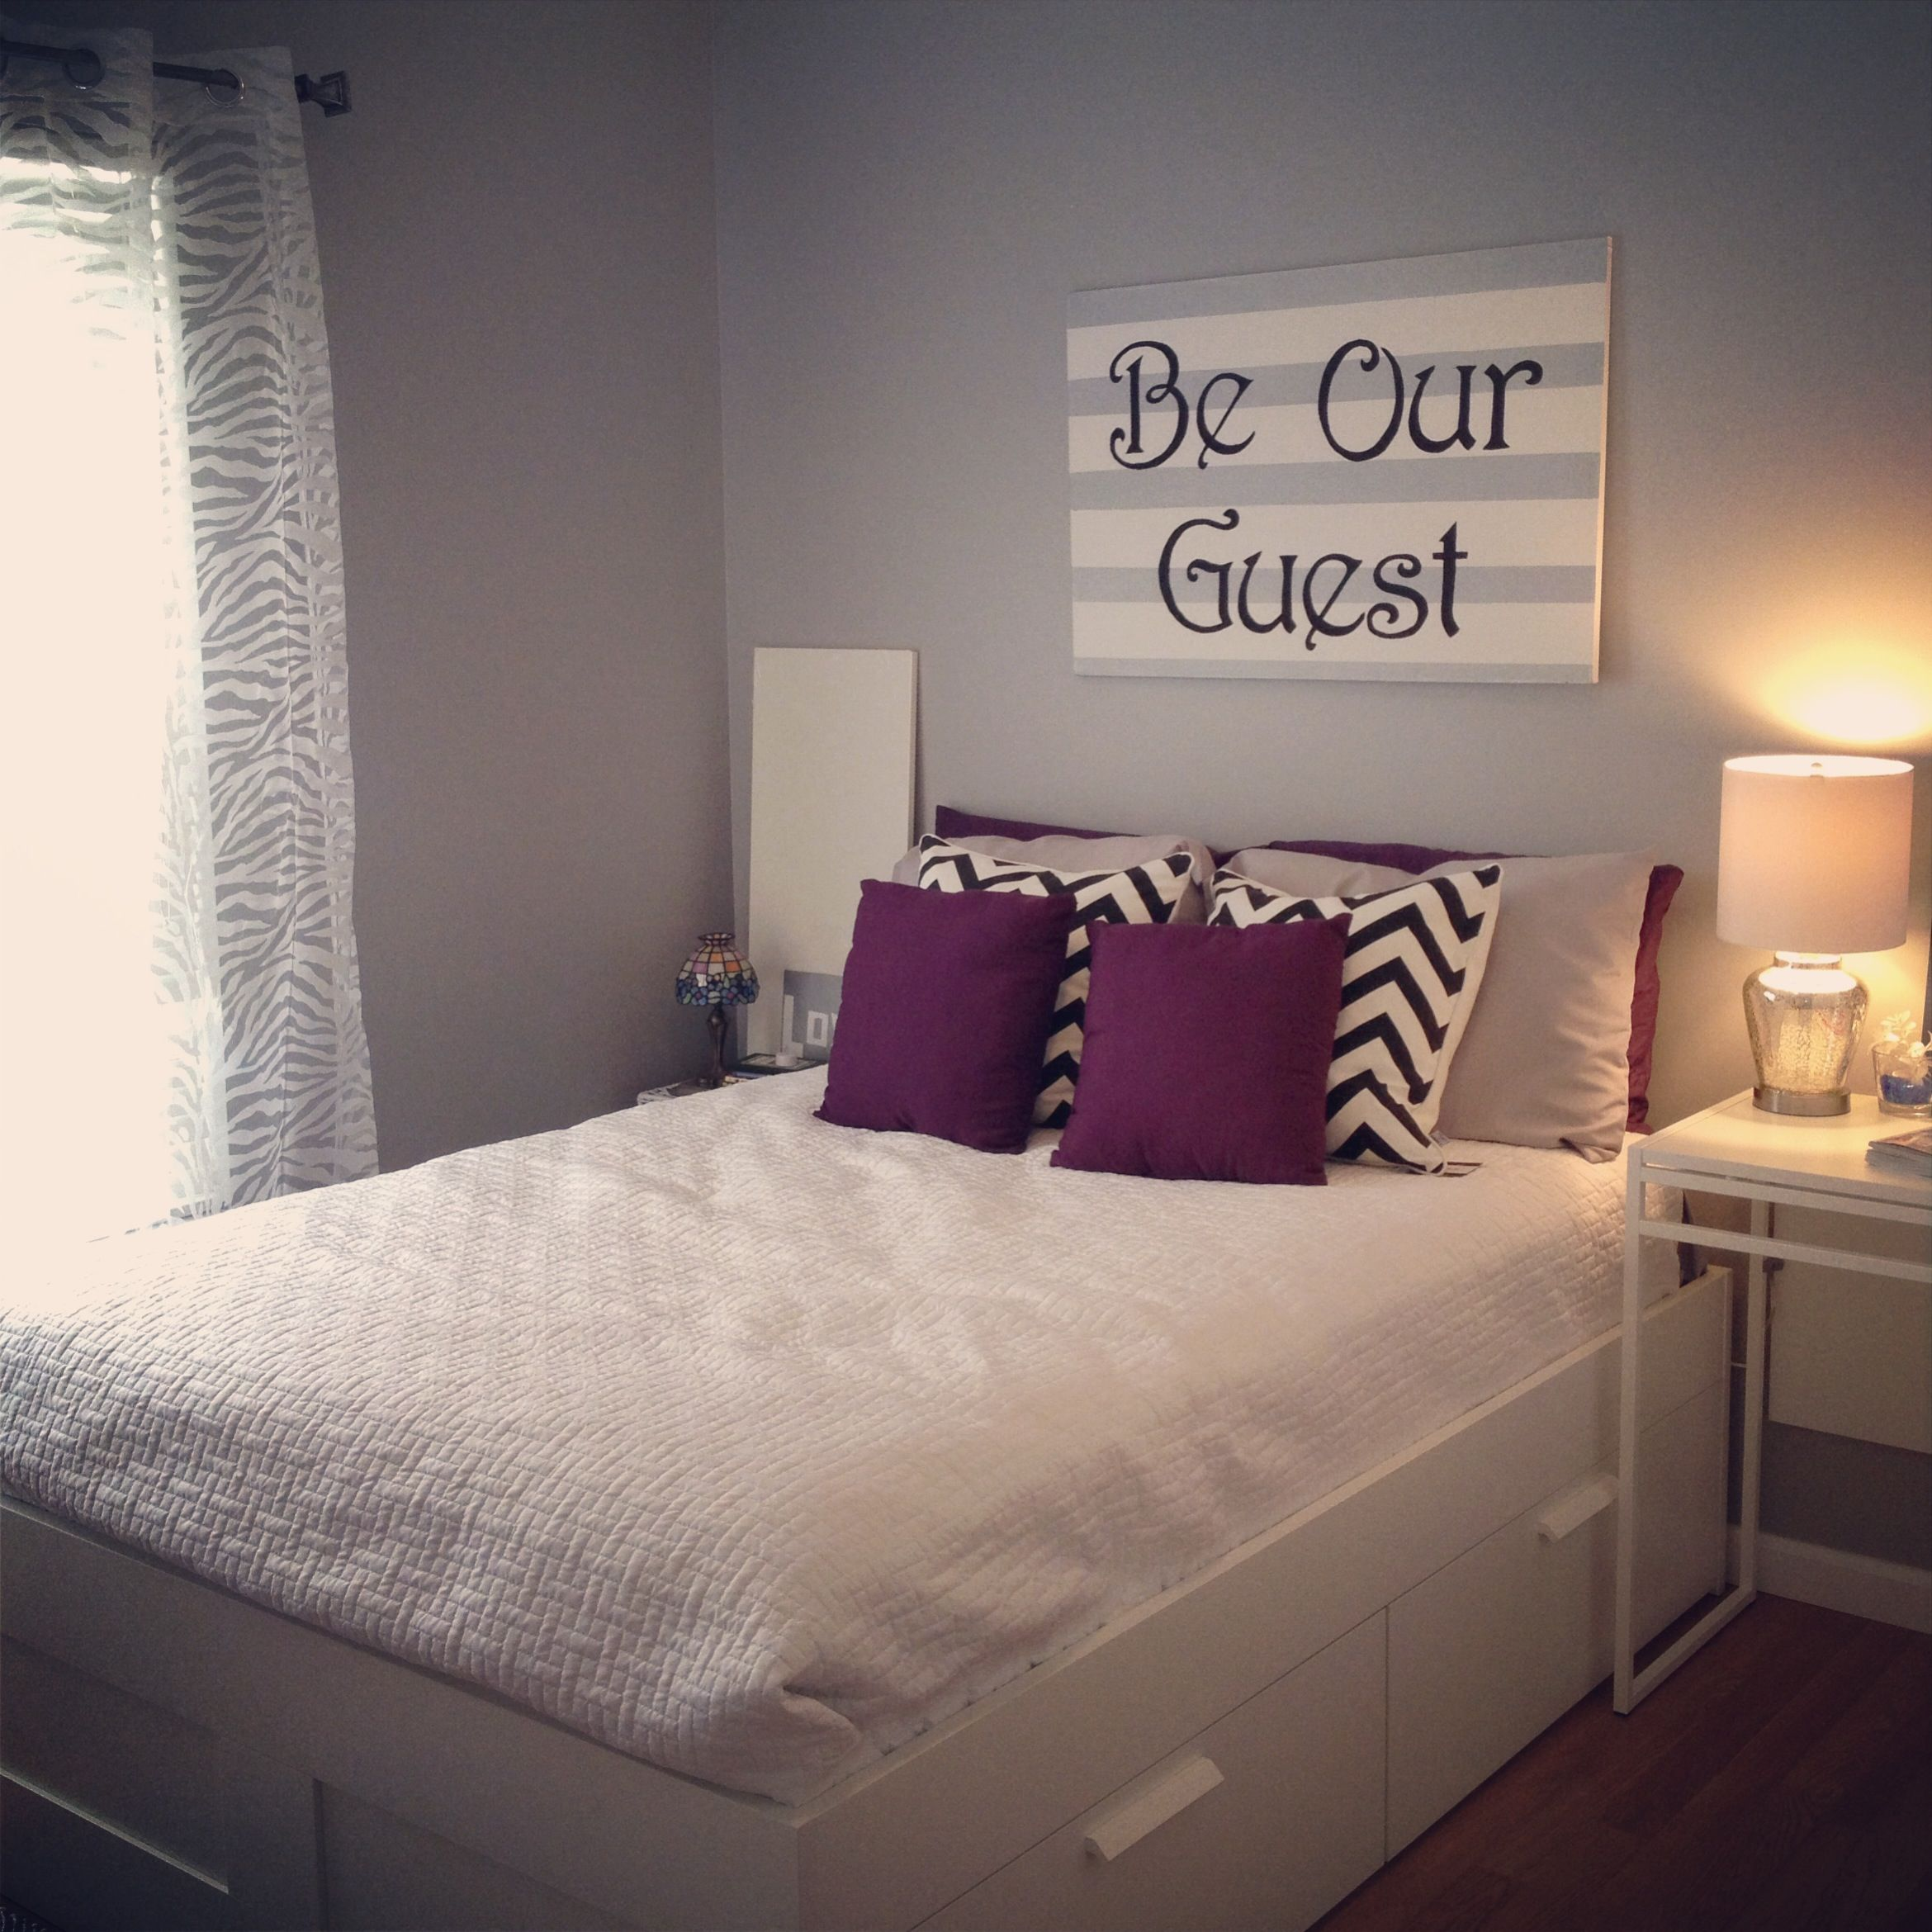 Guest Room Decor! Instagram:@lovelylittleblessings